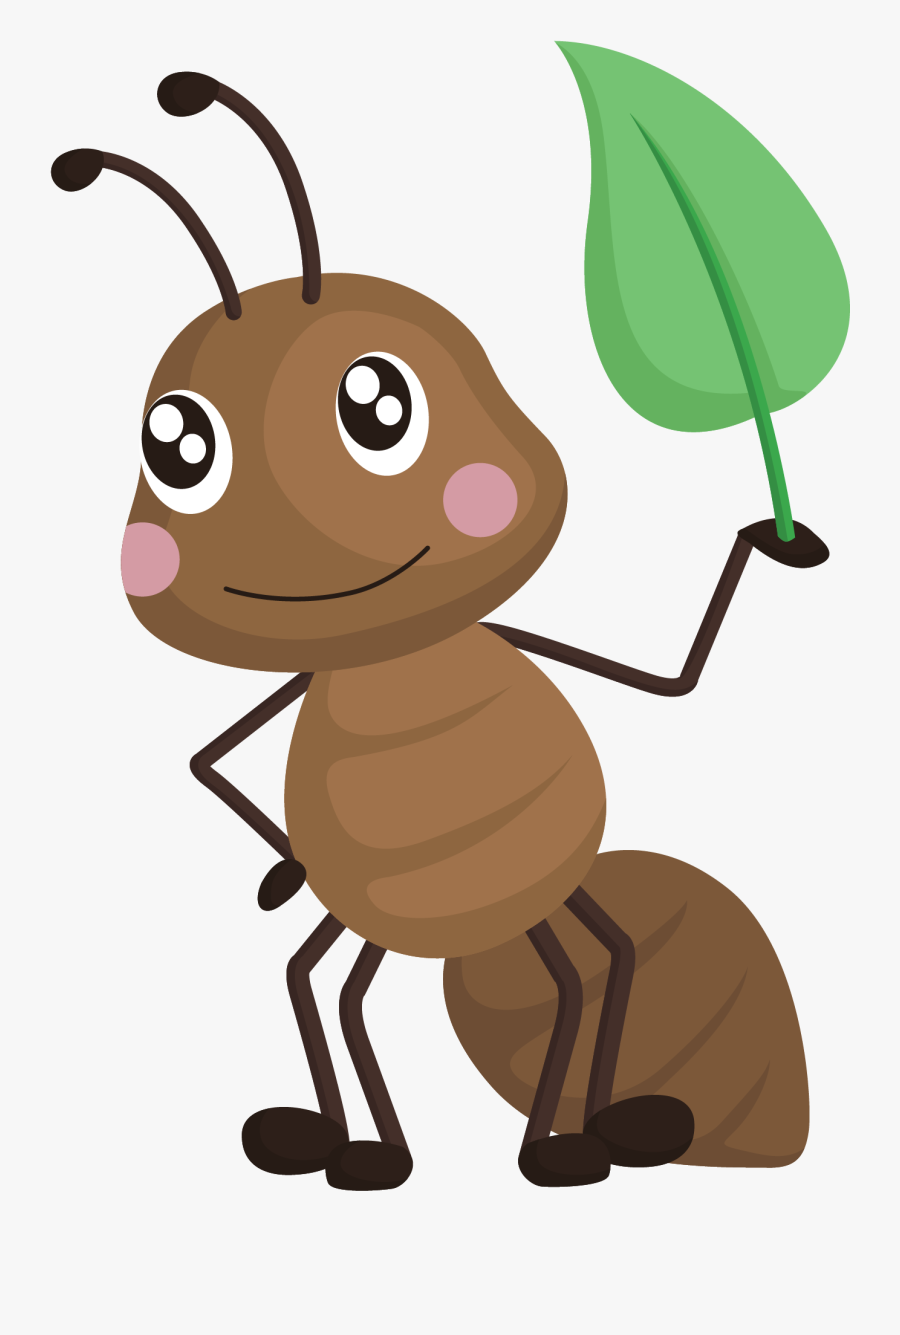 Ants Clipart Brown Ant - Alphabet Ant, Transparent Clipart